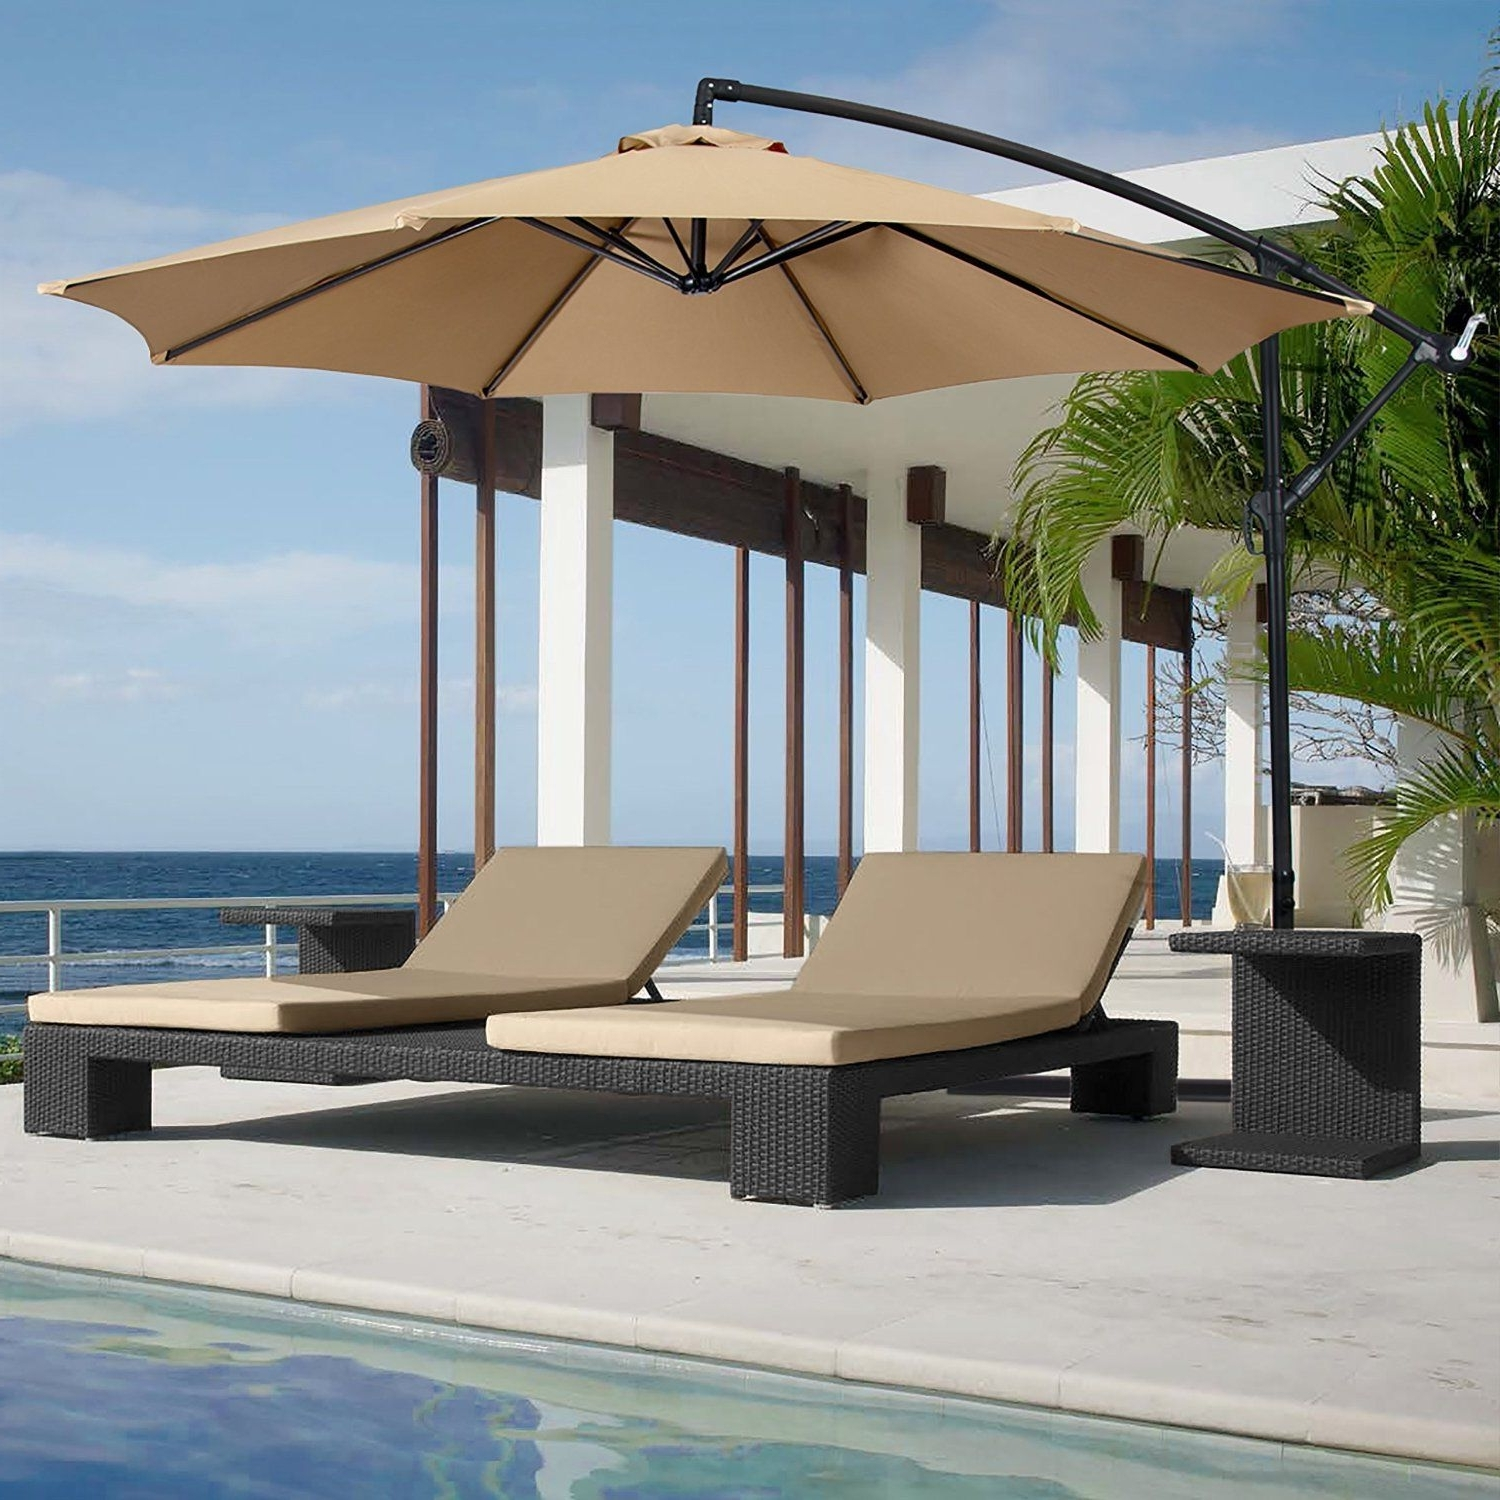 Most Popular Amazon Patio Umbrellas In Amazon : Best Choice Products® Patio Umbrella Offset 10' Hanging (View 14 of 20)